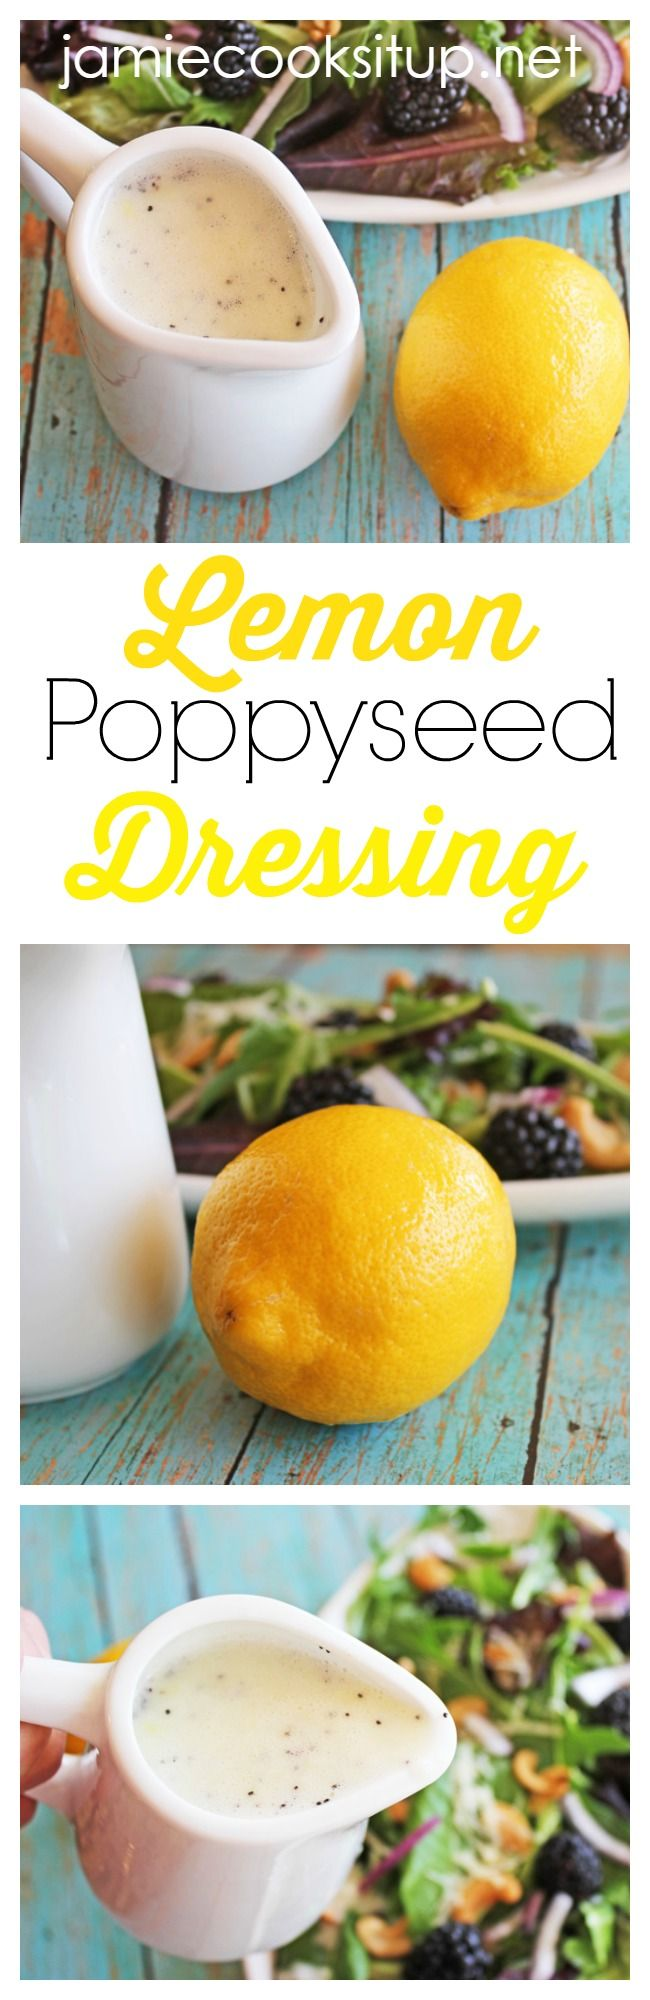 Lemon Poppyseed Dressing I Jamie Cooks It Up!  Note....made this 5/23/17. A little too sweet, but nice balance otherwise...bja